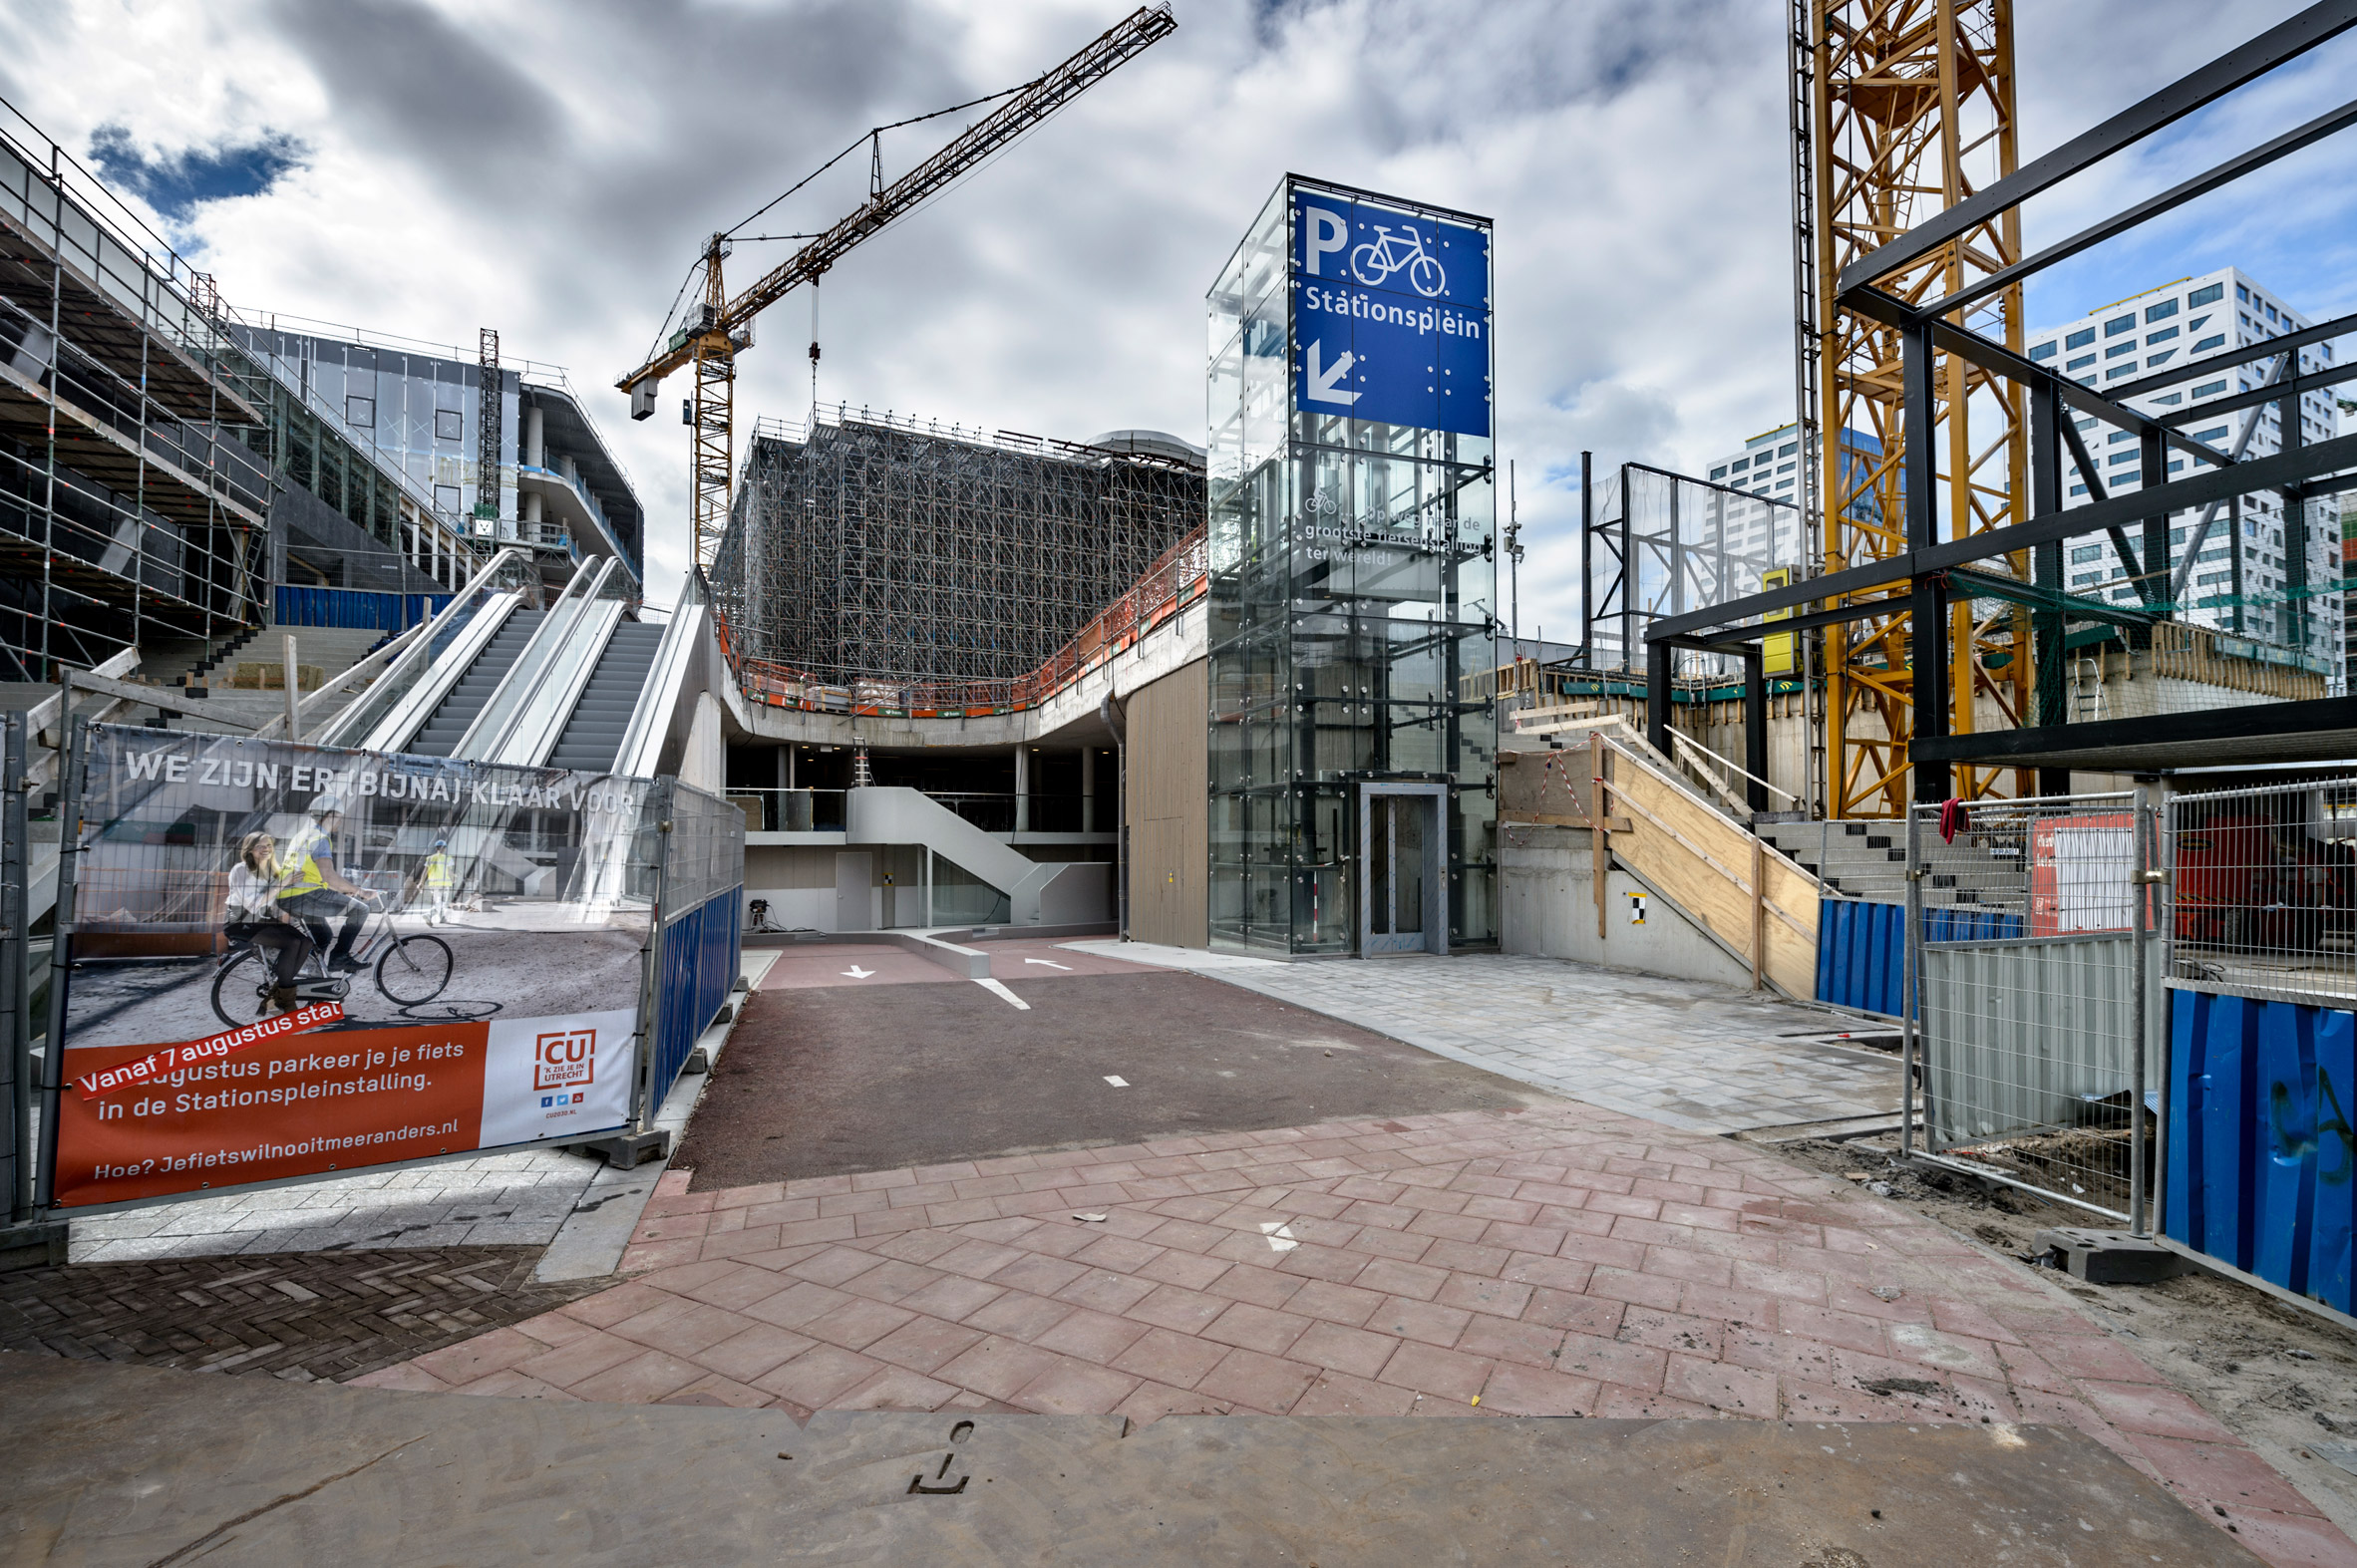 World's largest bicycle parking garage opens in Utrecht